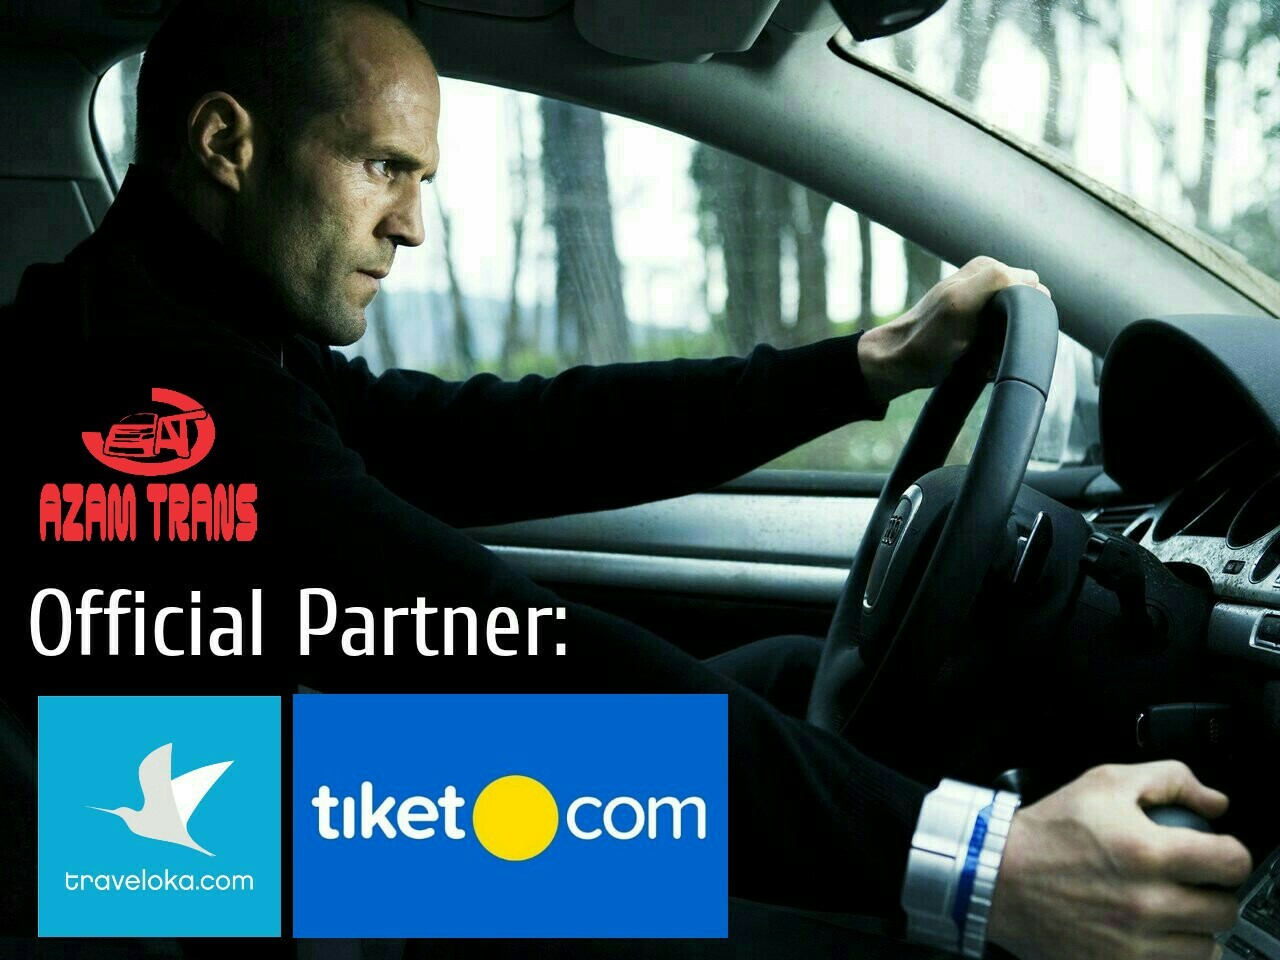 Official Partner Traveloka dan Tiket.com